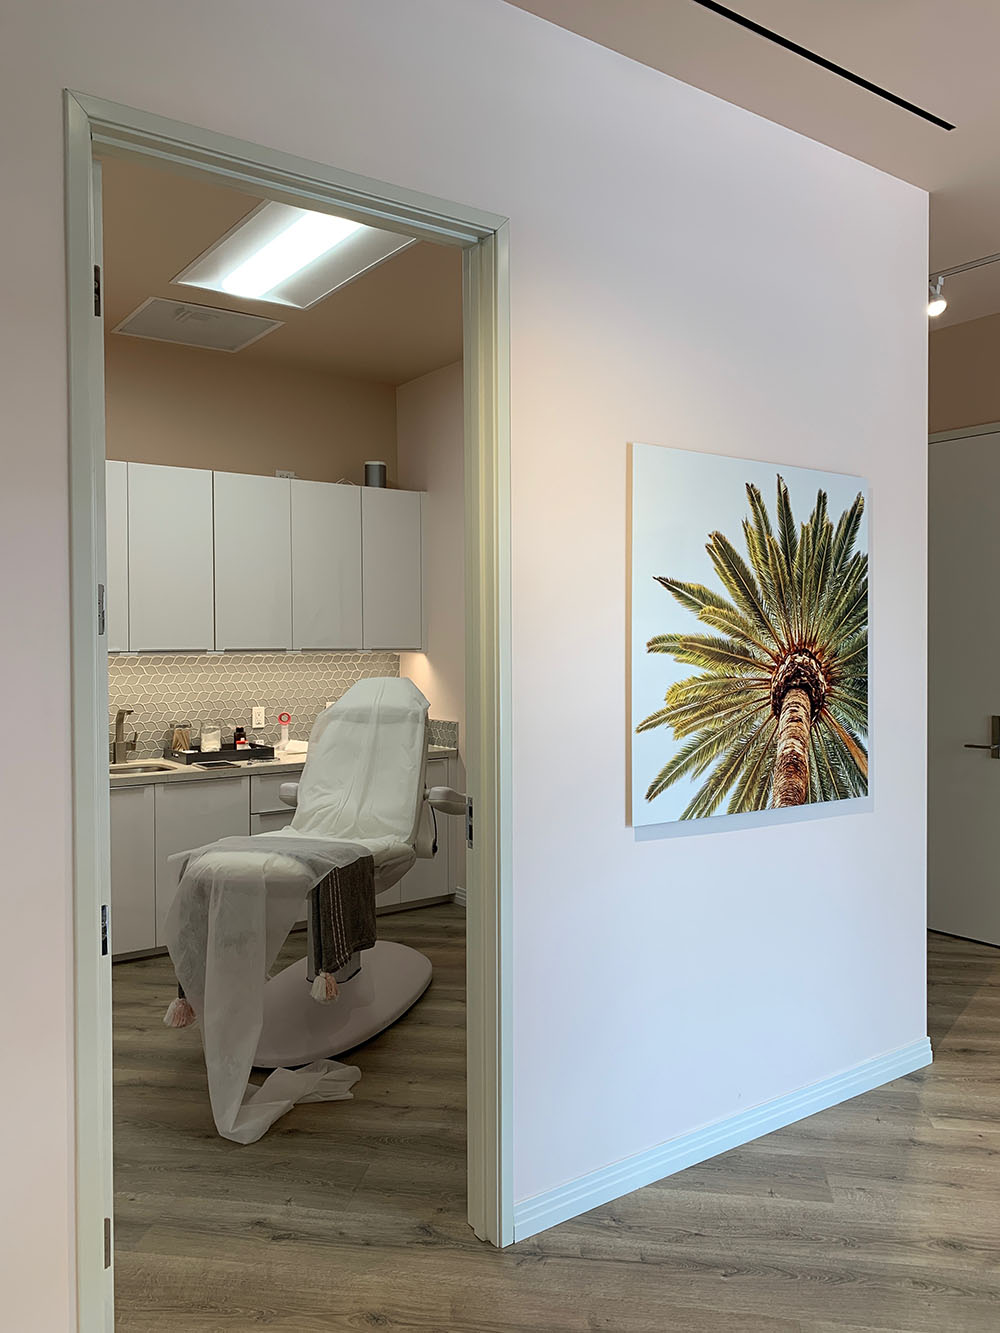 One of the treatment rooms for Botox, fillers, and other services.